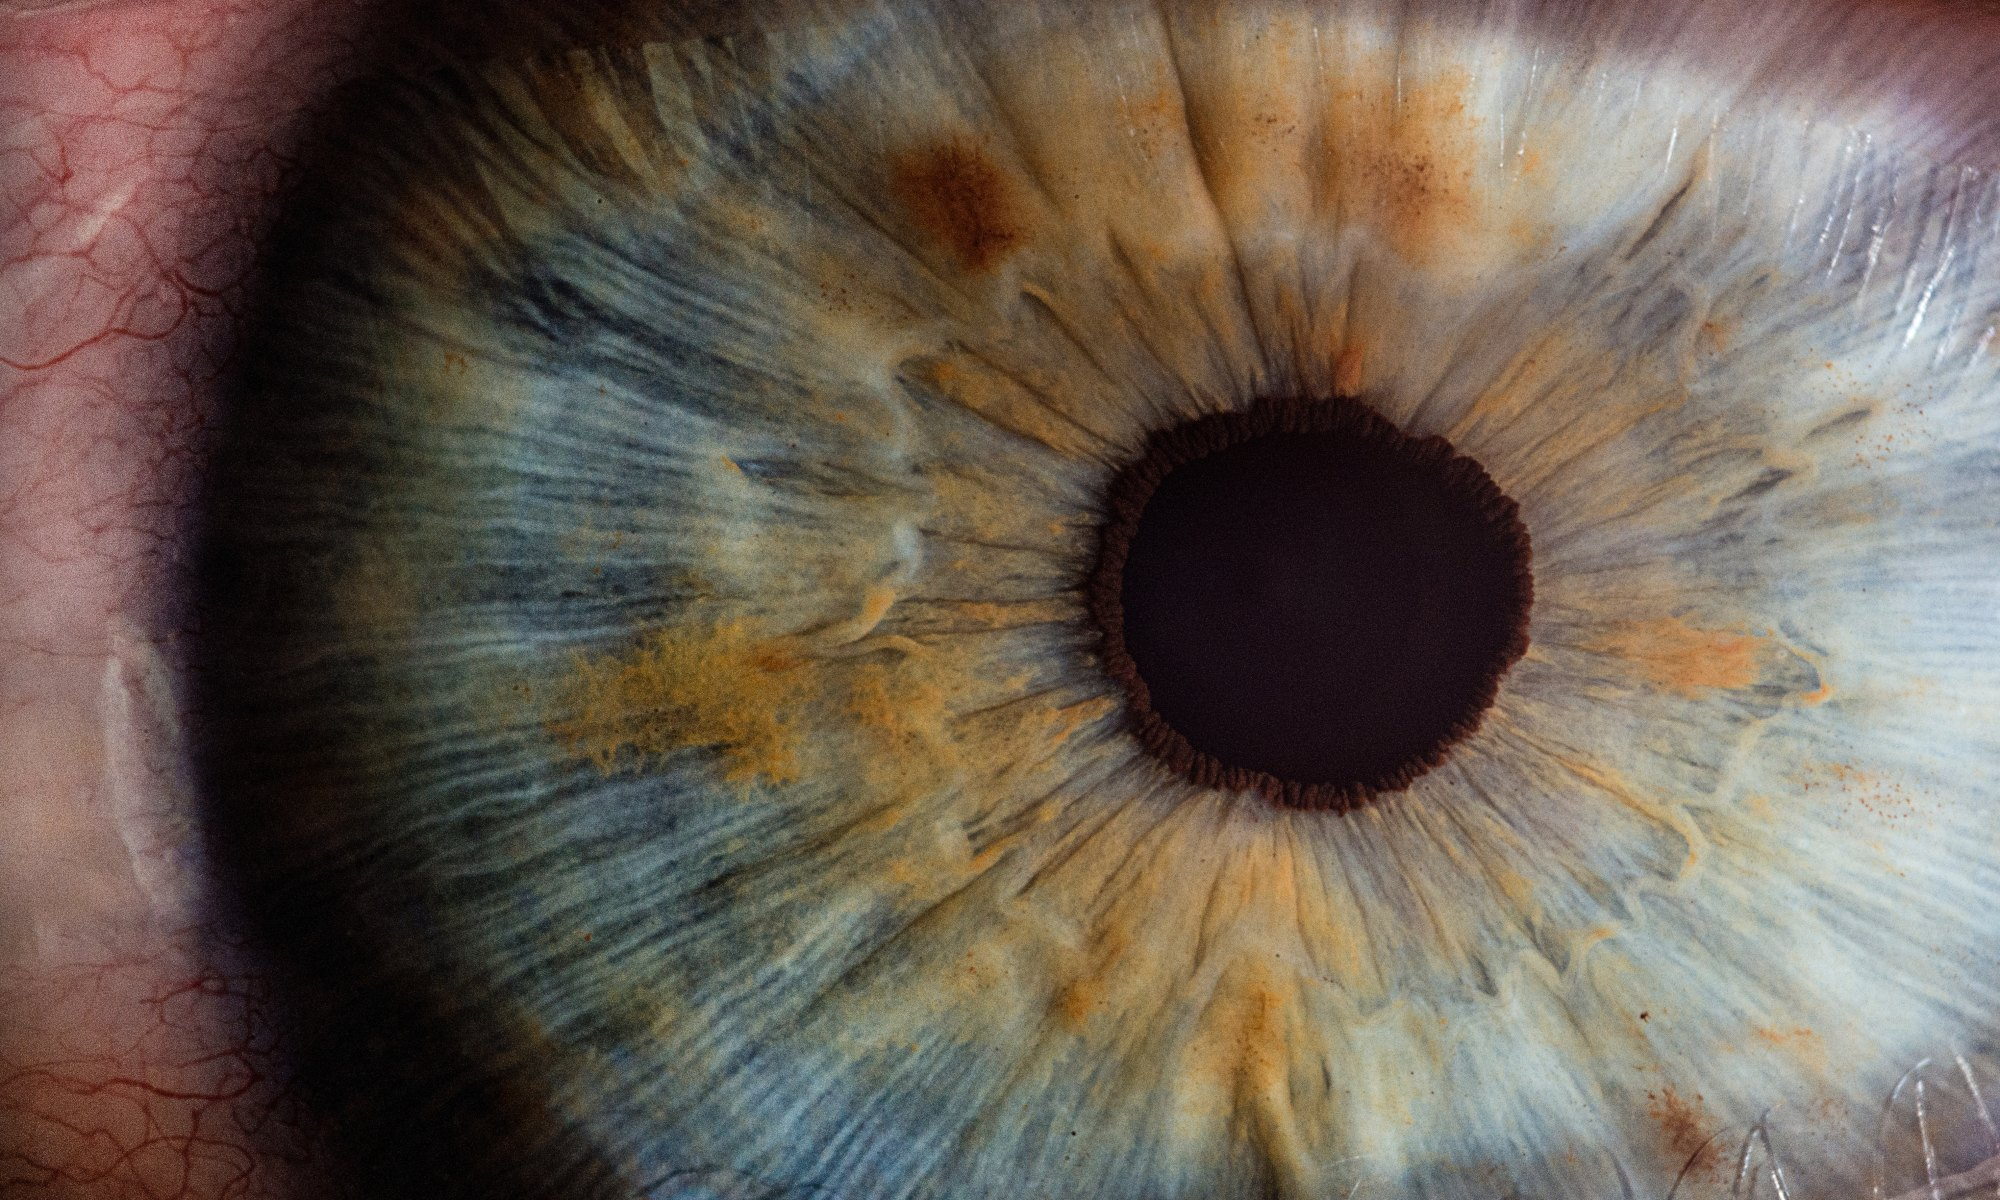 Dilated pupil secondary to serotonin syndrome